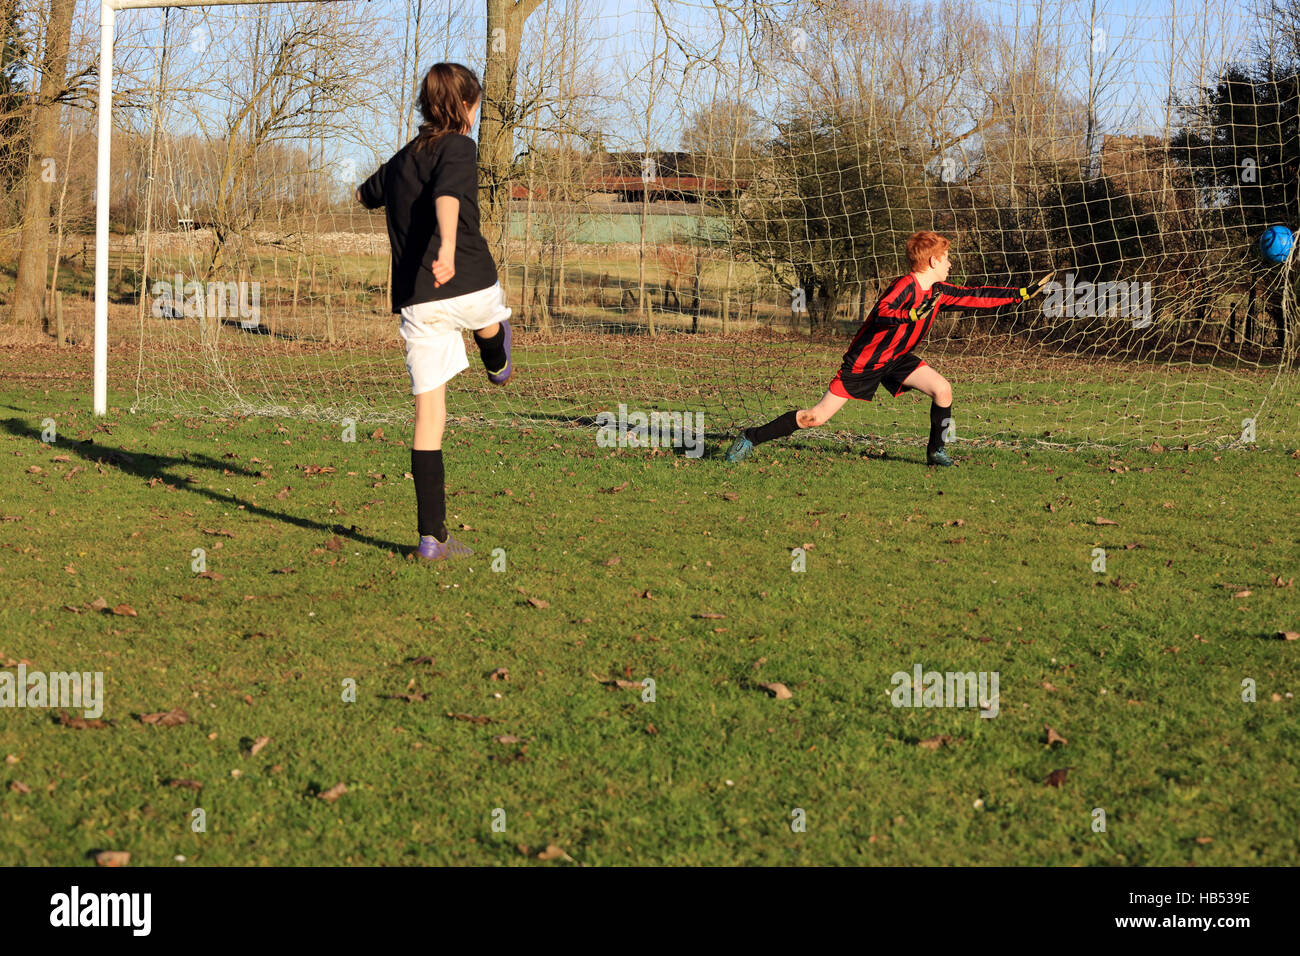 Girl taking penalty kick, English football - Stock Image